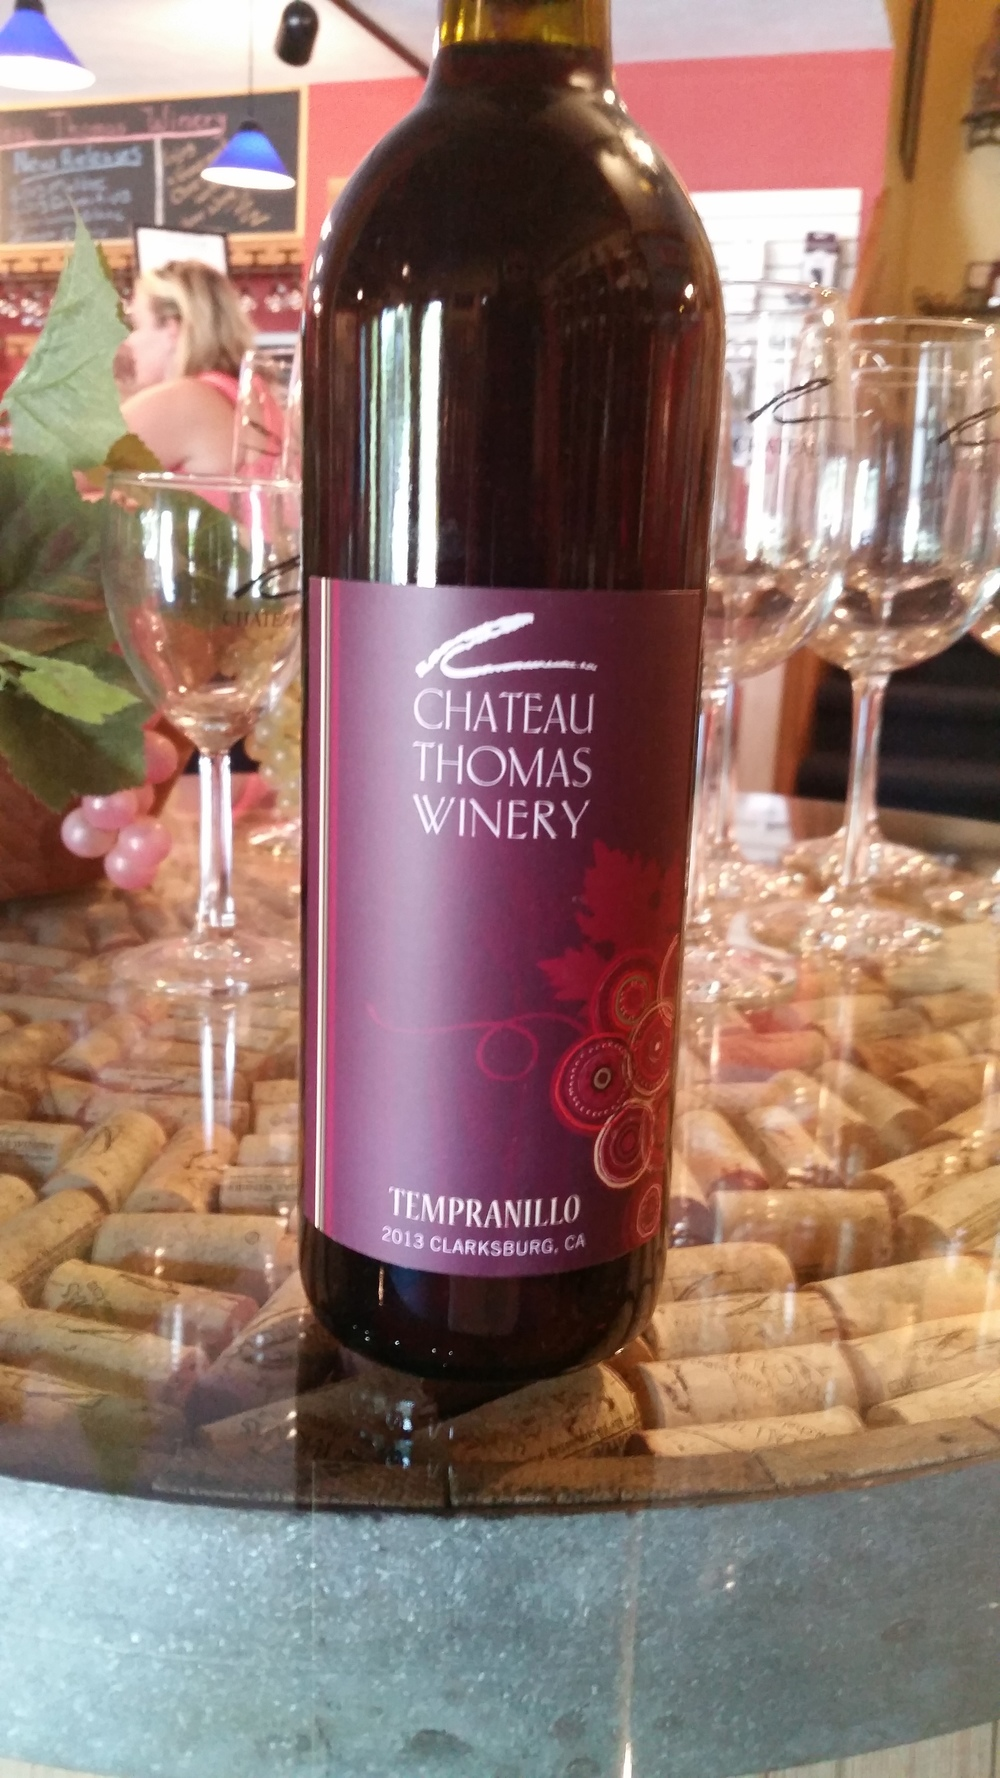 Chateau Thomas Winery, Tempranillo